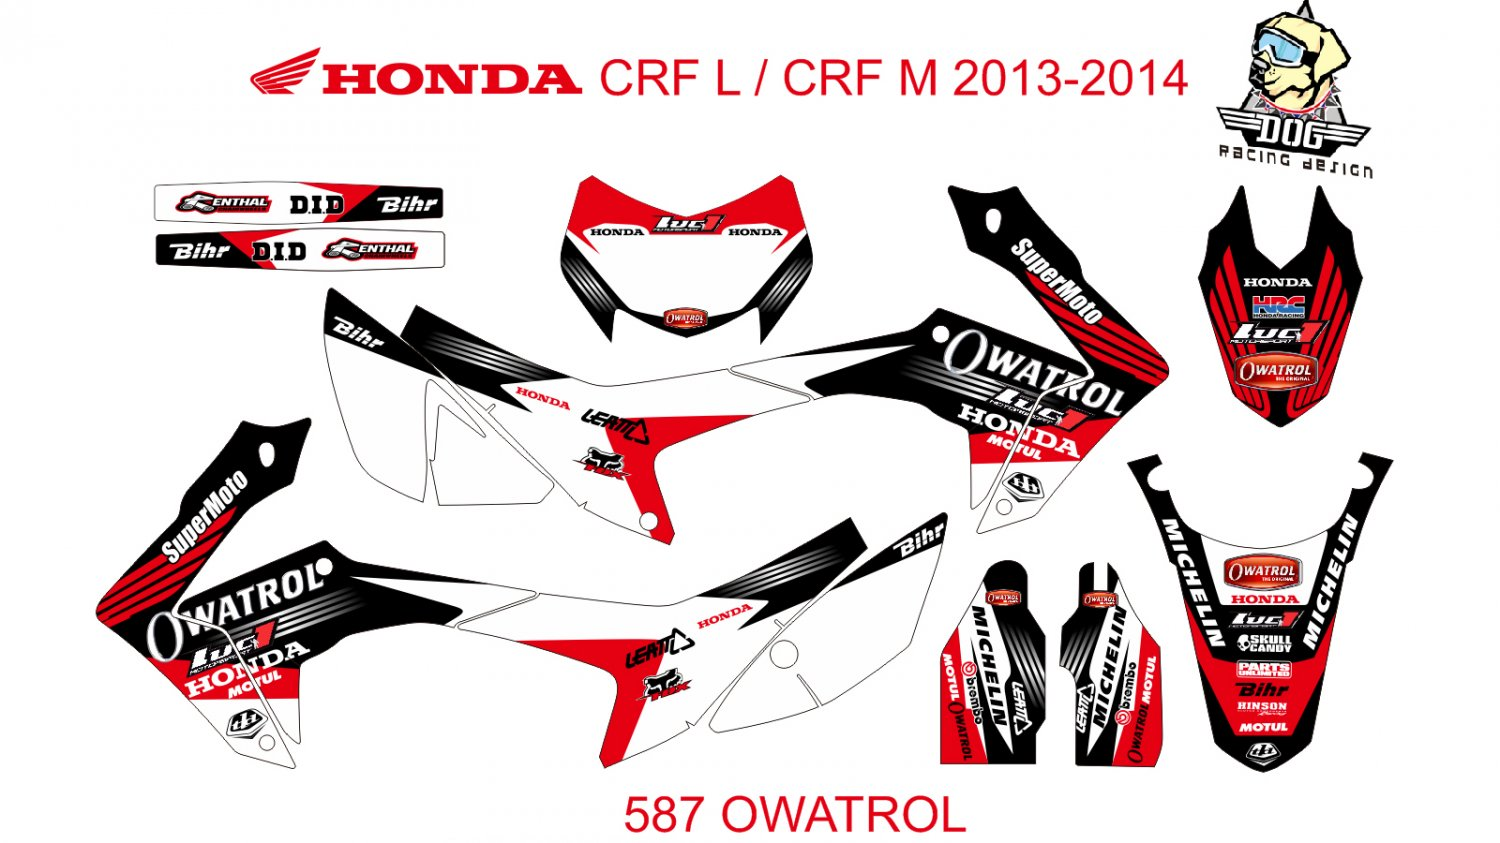 HONDA CRF L CRF M 2013-2014 GRAPHIC DECAL KIT CODE.587